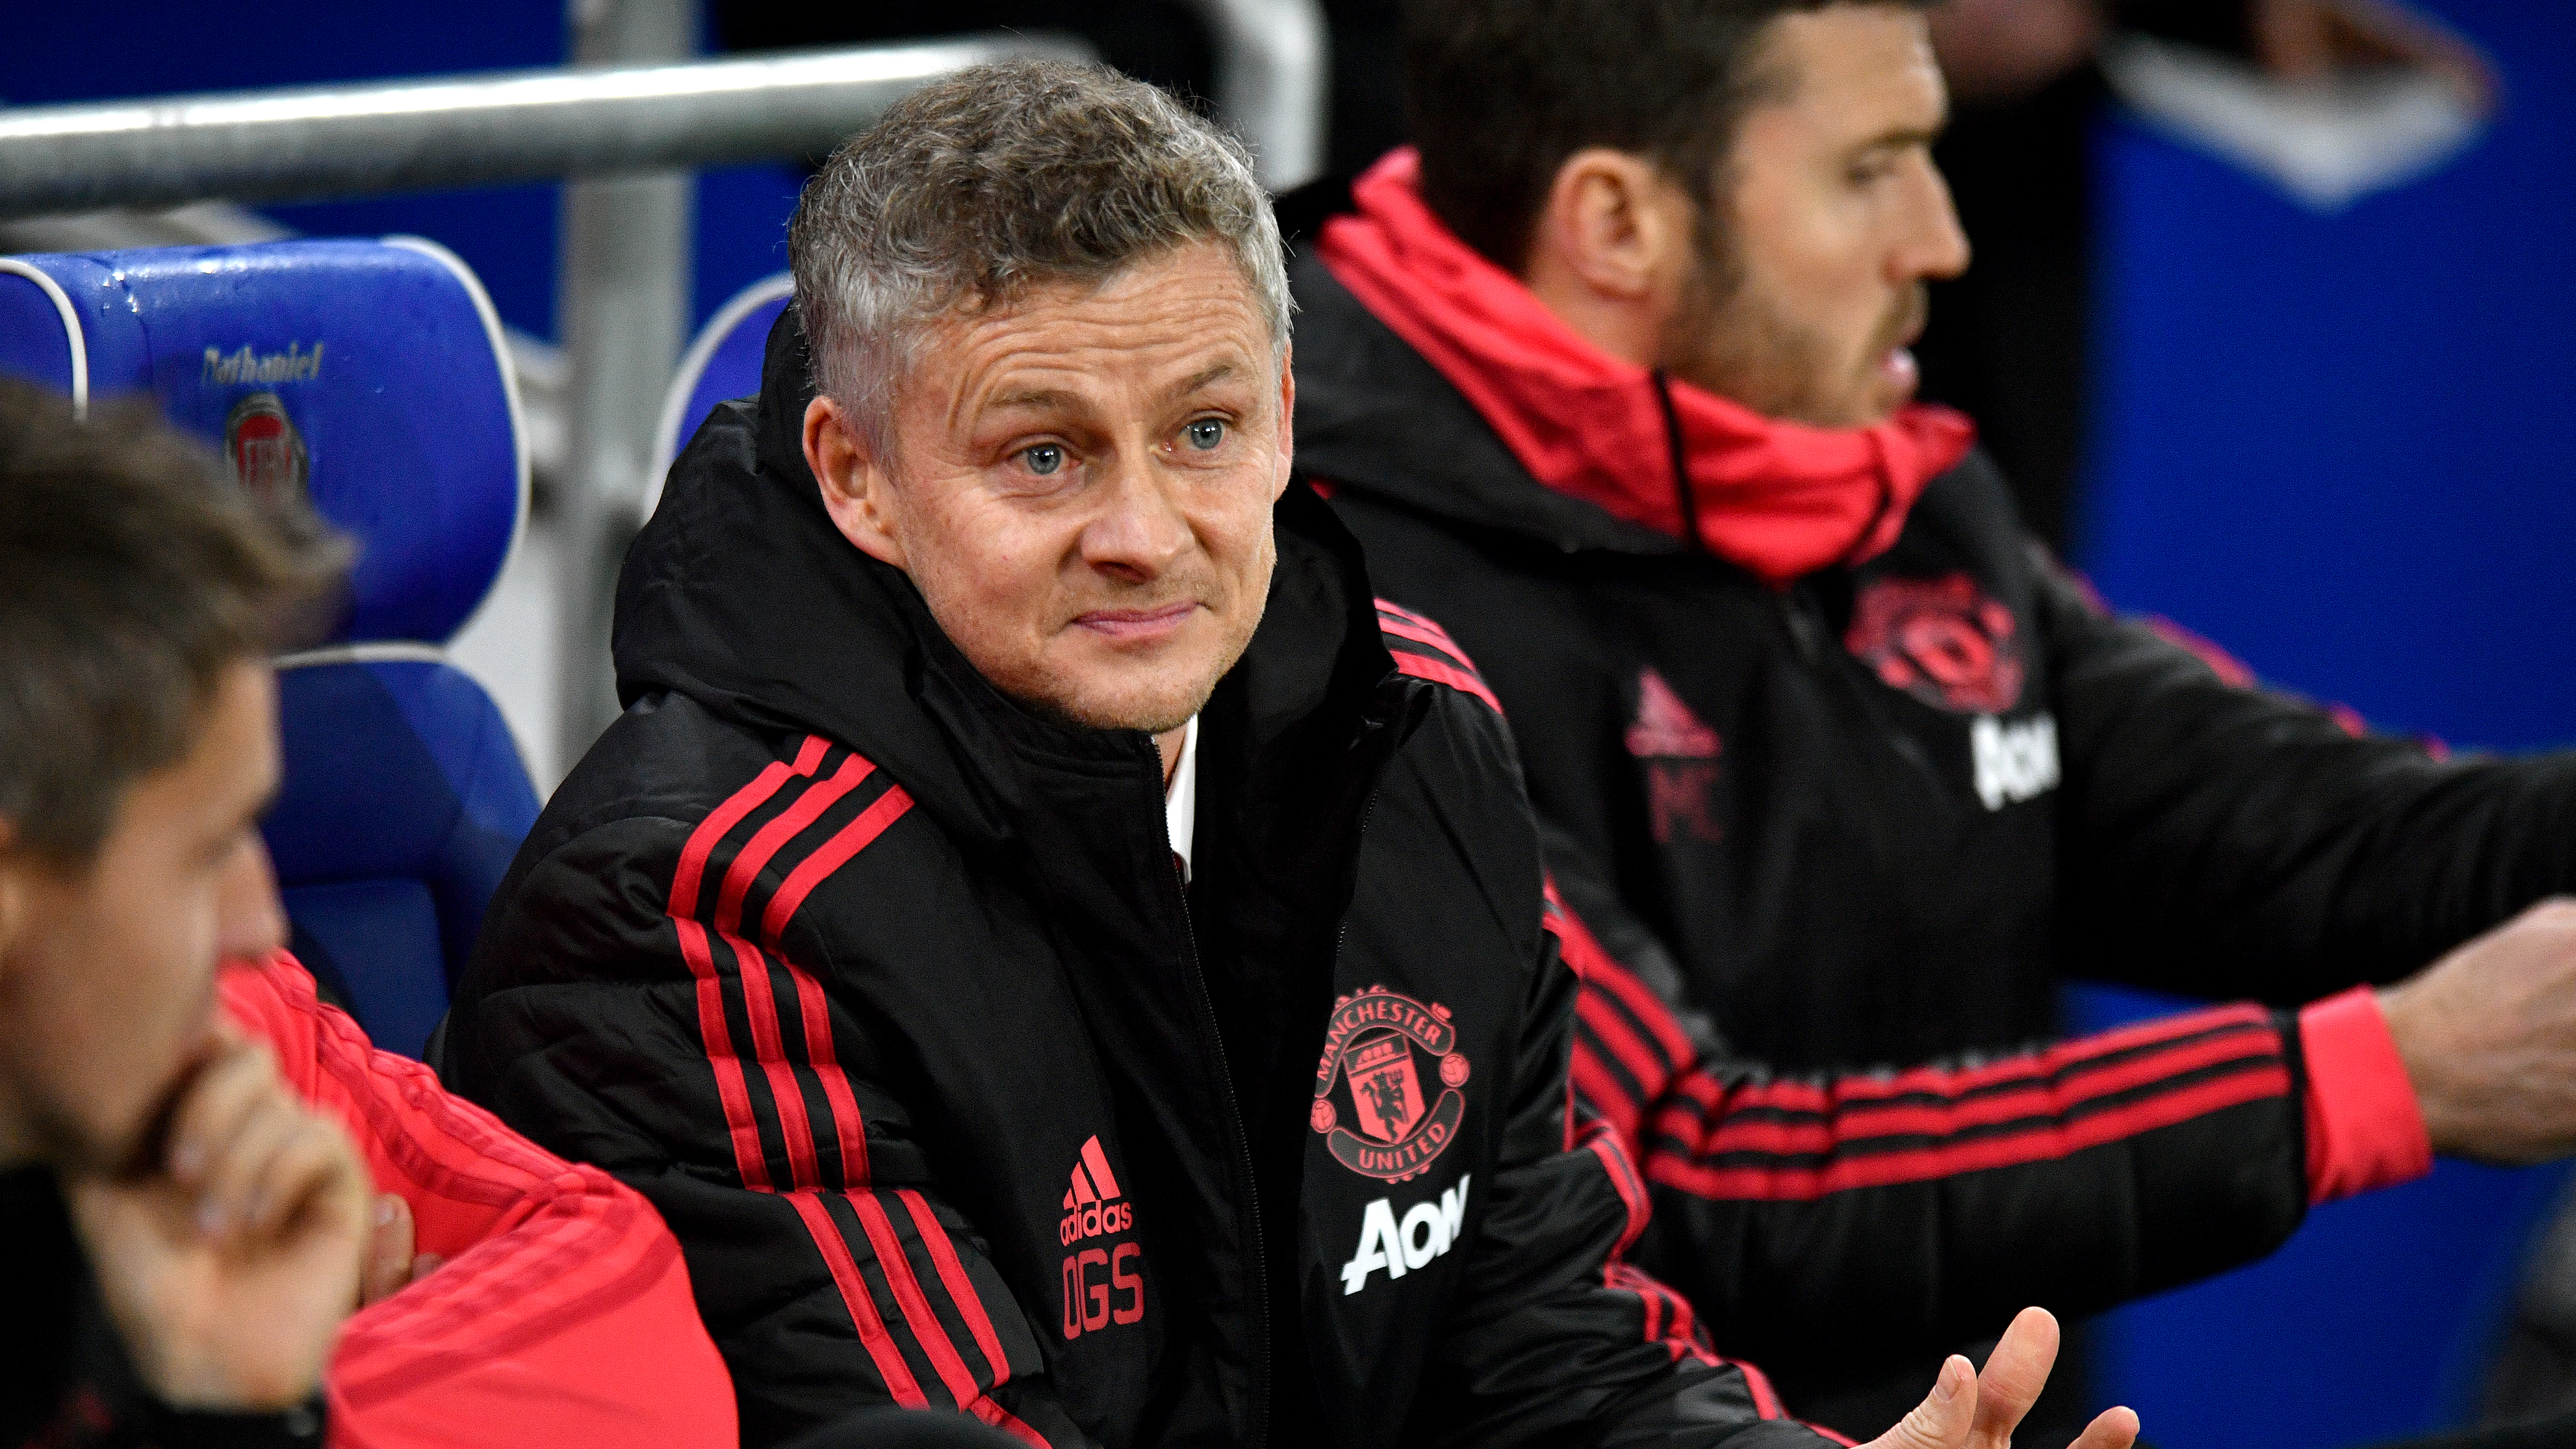 Ole Gunnar Solskjaer Will Only Be Able To Make Loan Signings